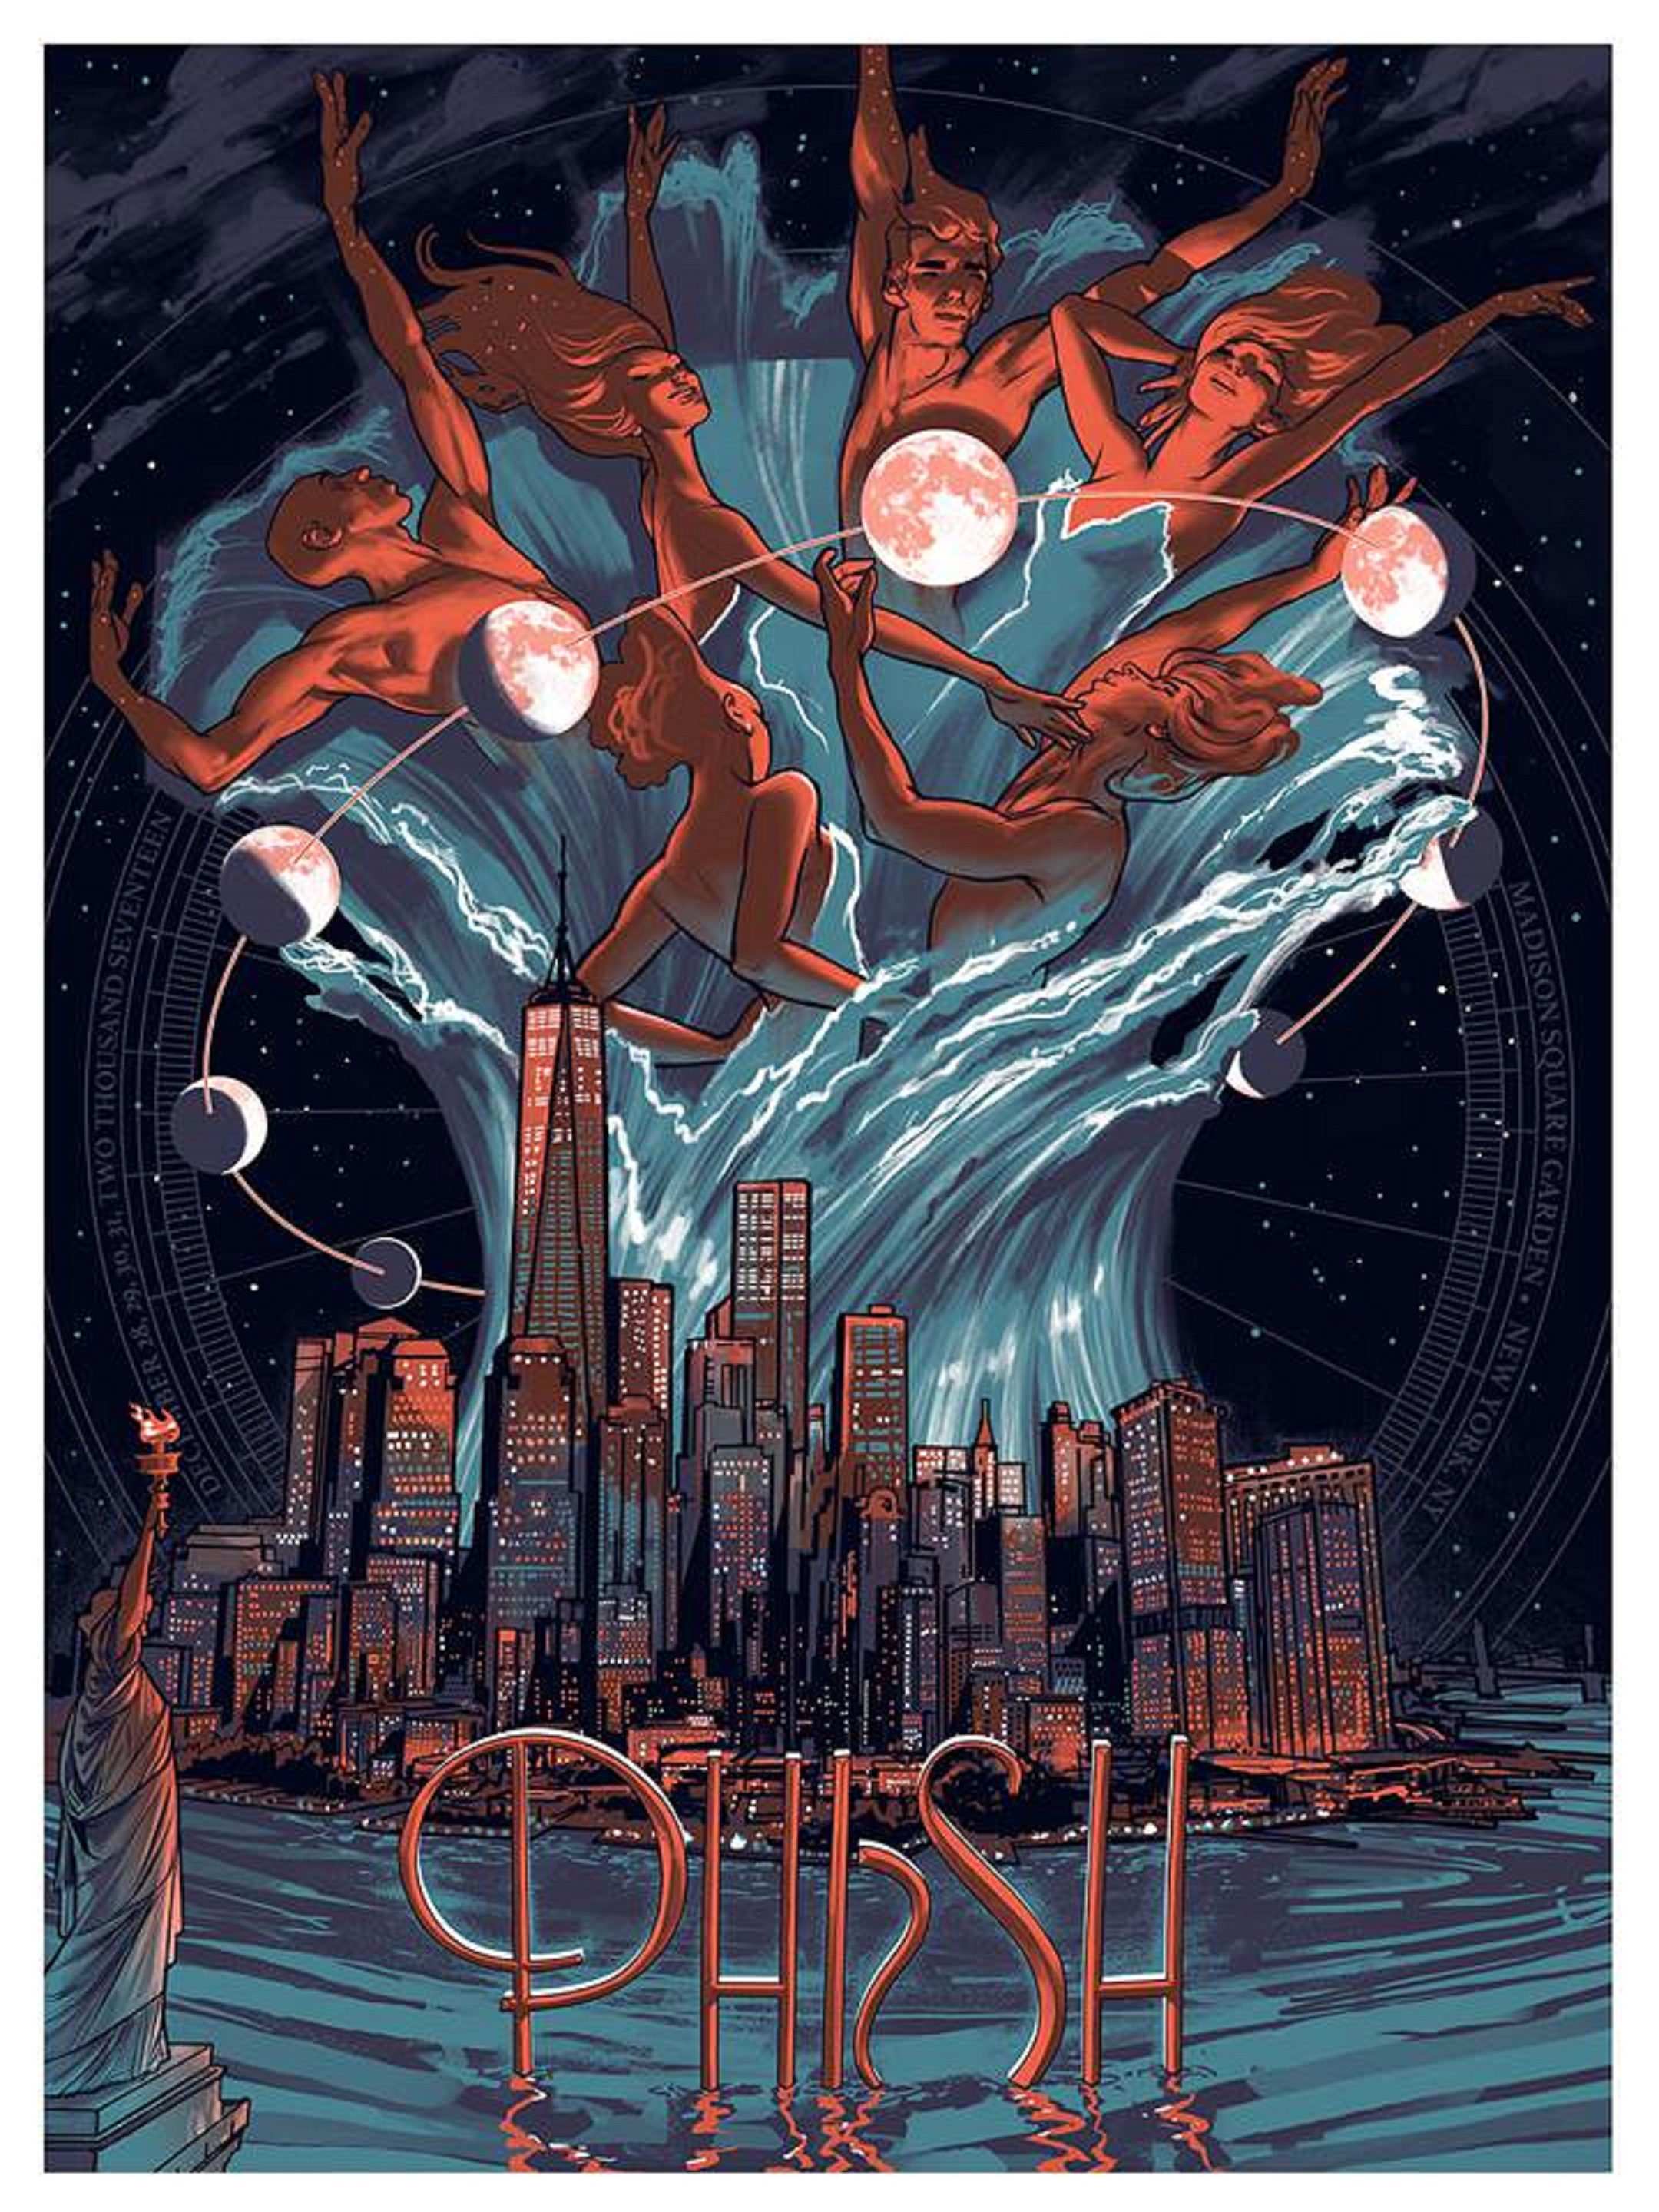 Phish 2017/2018 New Year's Signed Poster Charity Auction